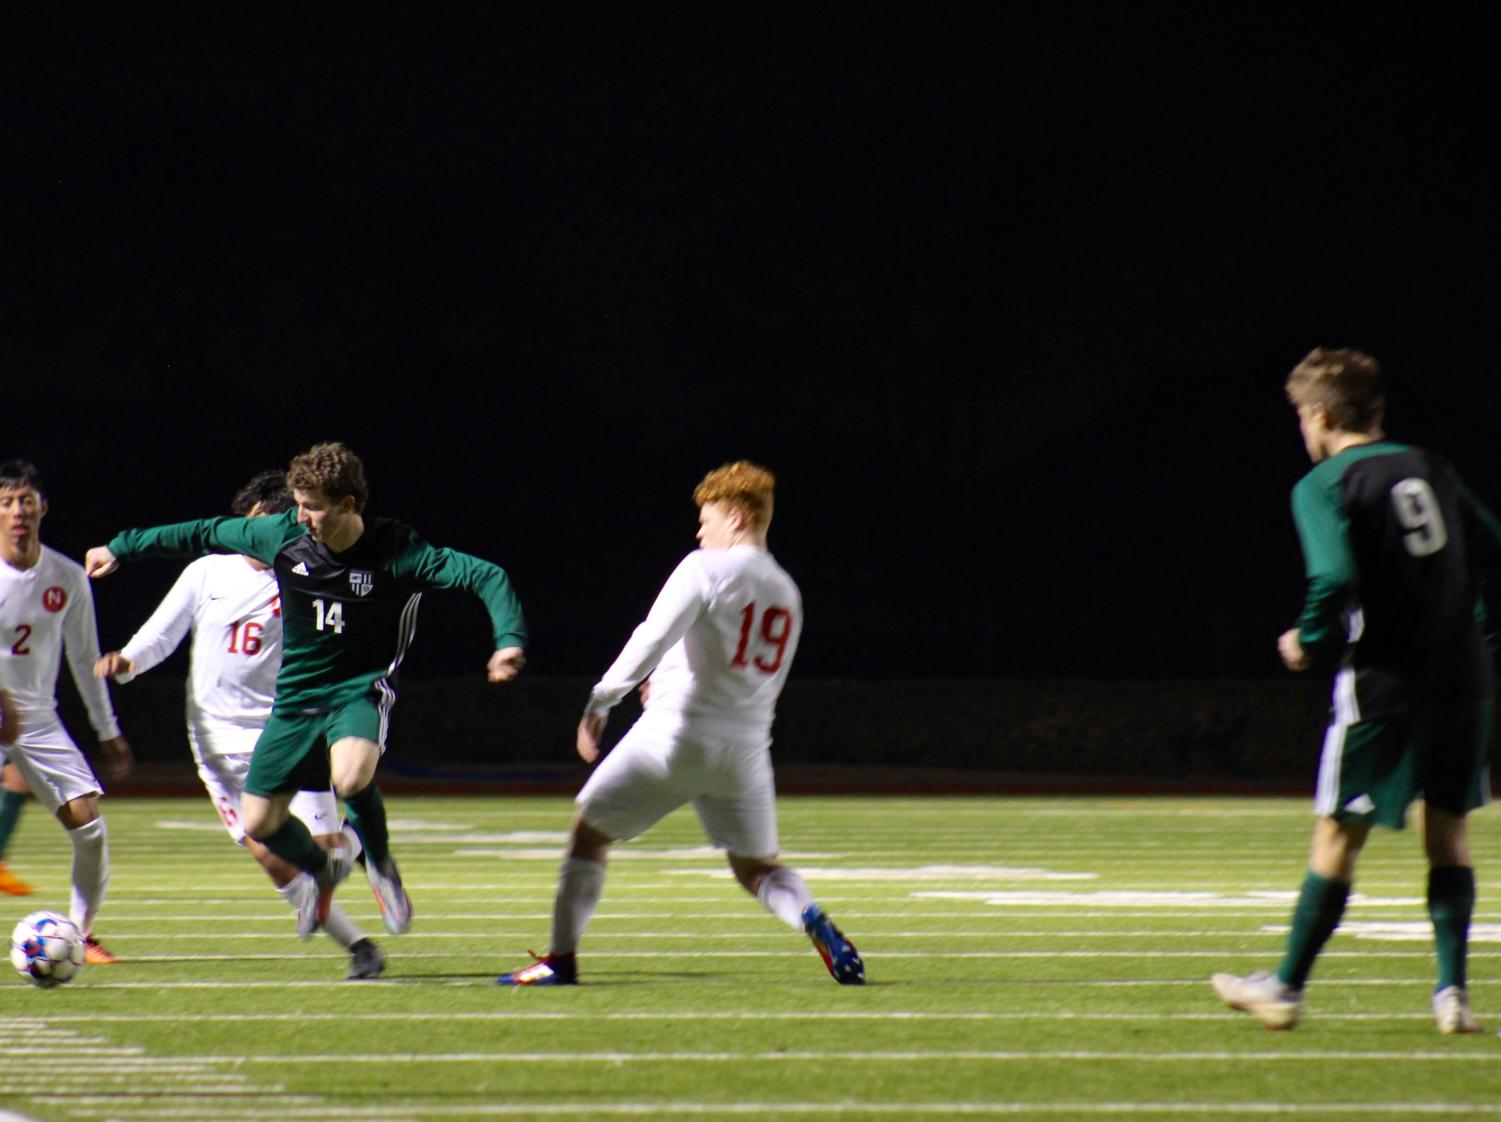 Senior Nolan DaRosa, No. 14, attempts to steal the ball from Justin Northwest players. The varsity boys soccer won 5-1 at their first home game Jan. 17. DaRosa scored the second goal in the first half.